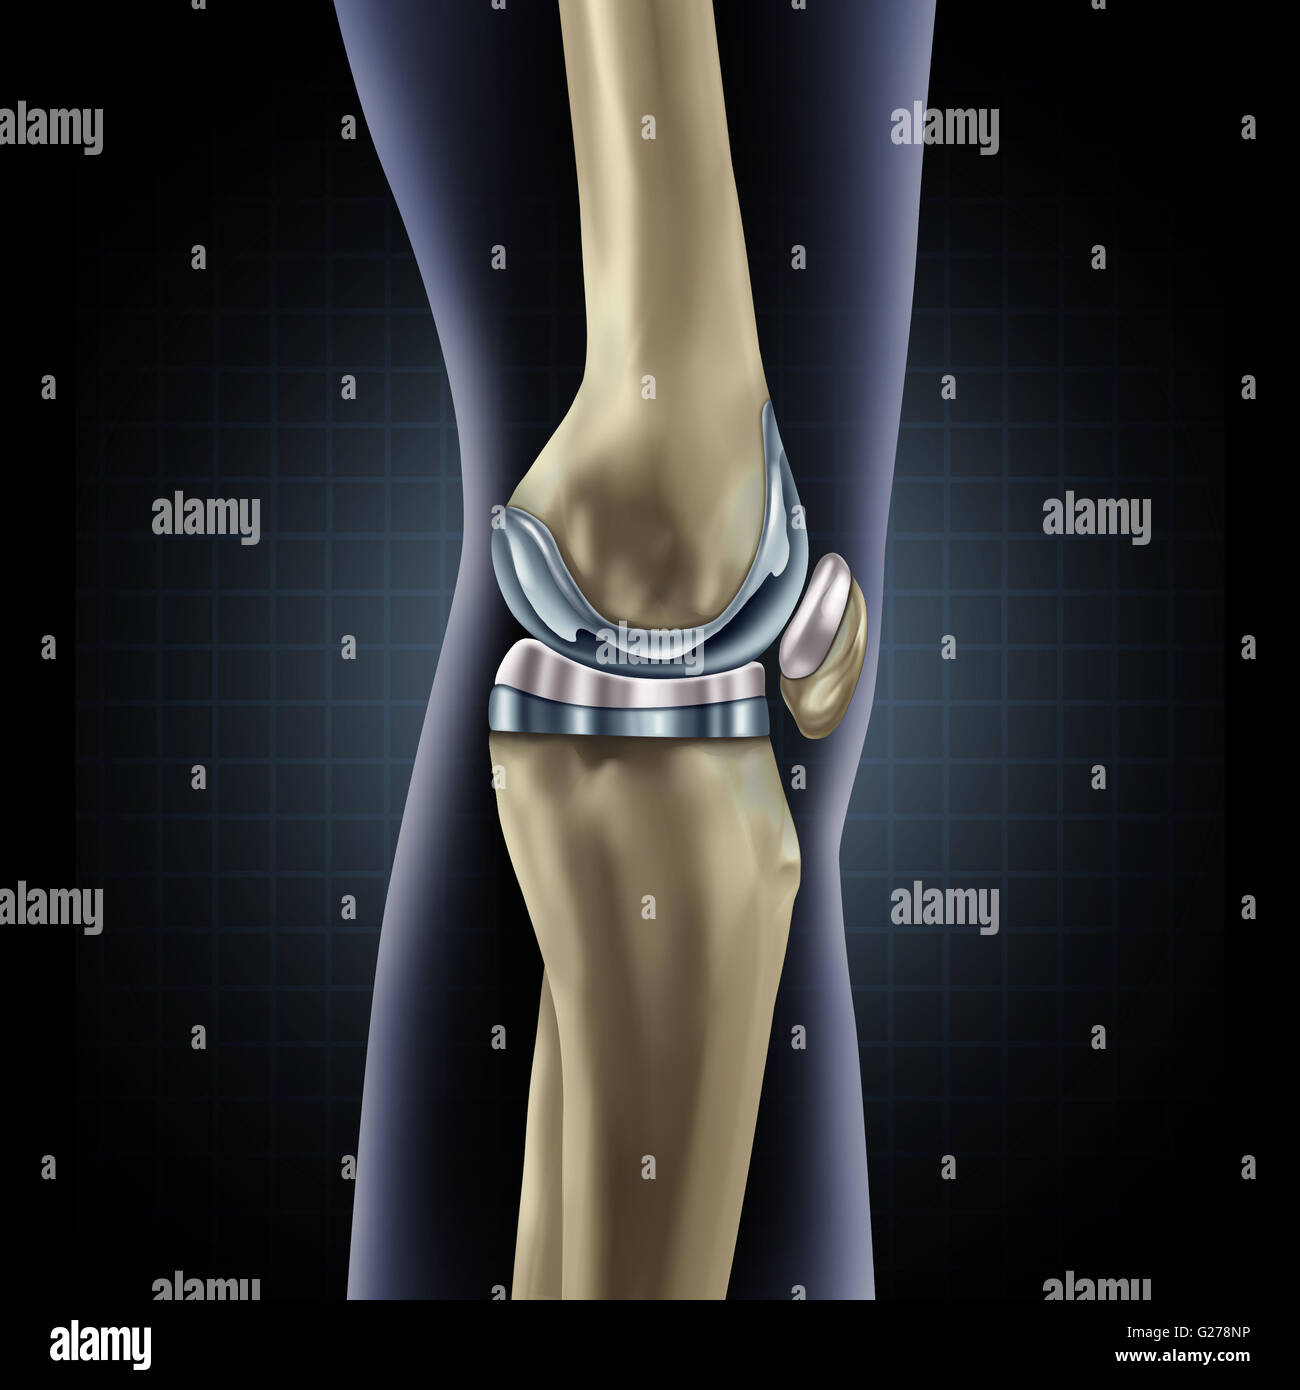 Knee replacement implant medical concept as a human leg anatomy ...